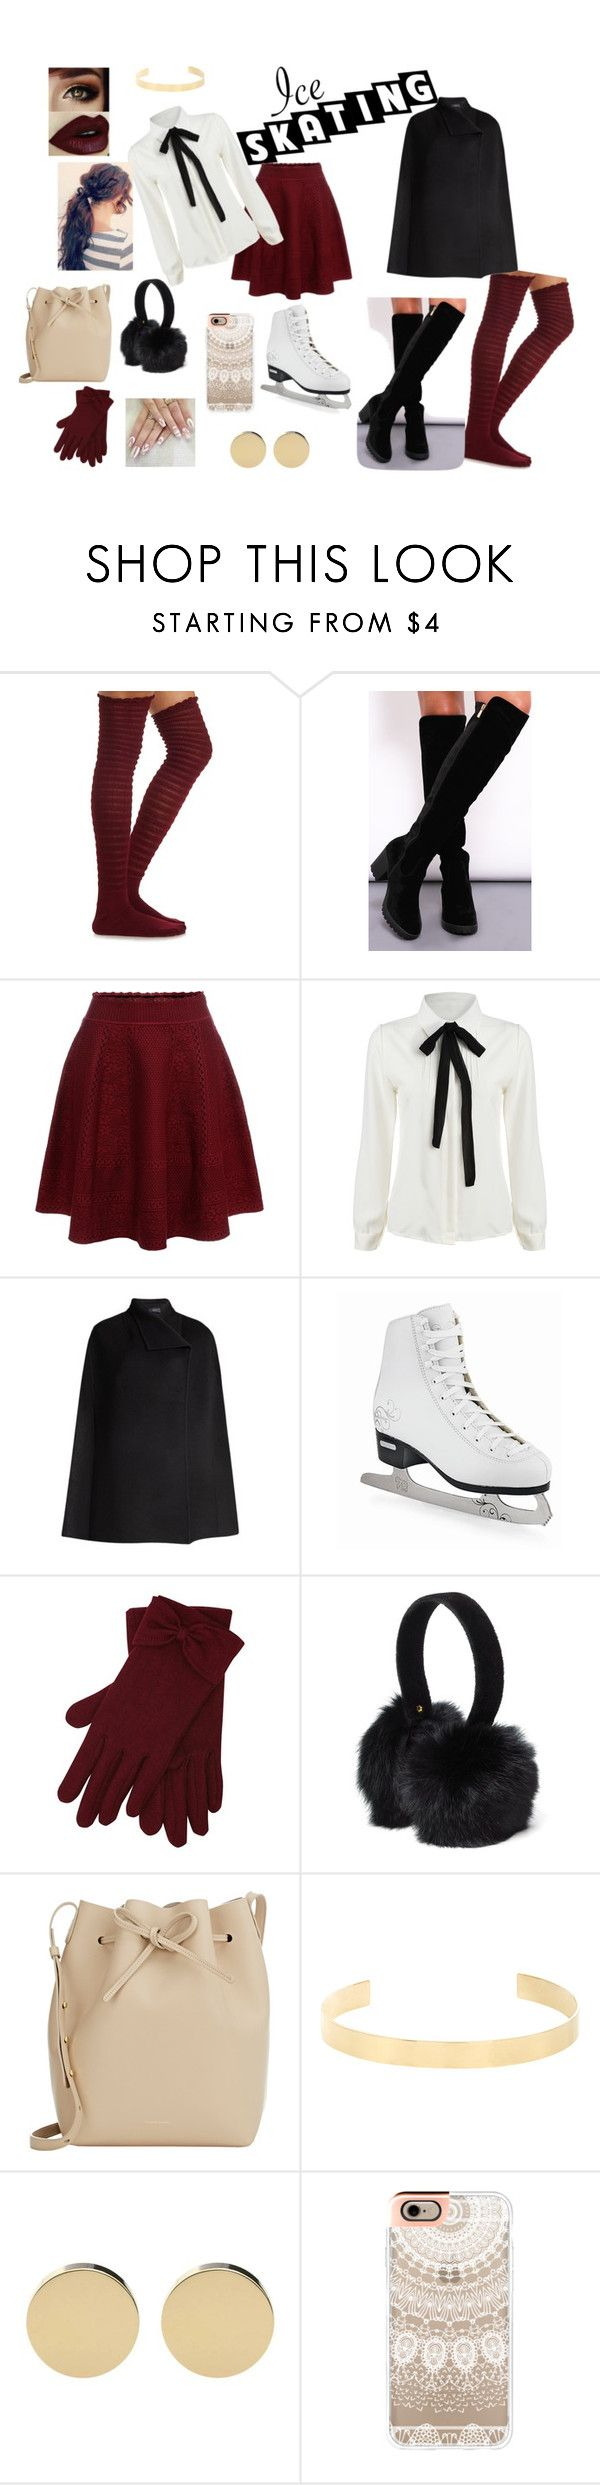 Ice Skating by ellie-lopez on Polyvore featuring Joseph, Charlotte Russe, Alexander McQueen, Dolly Rocka, Mansur Gavriel, Jennifer Fisher, Casetify, Surell, M&Co and women's clothing